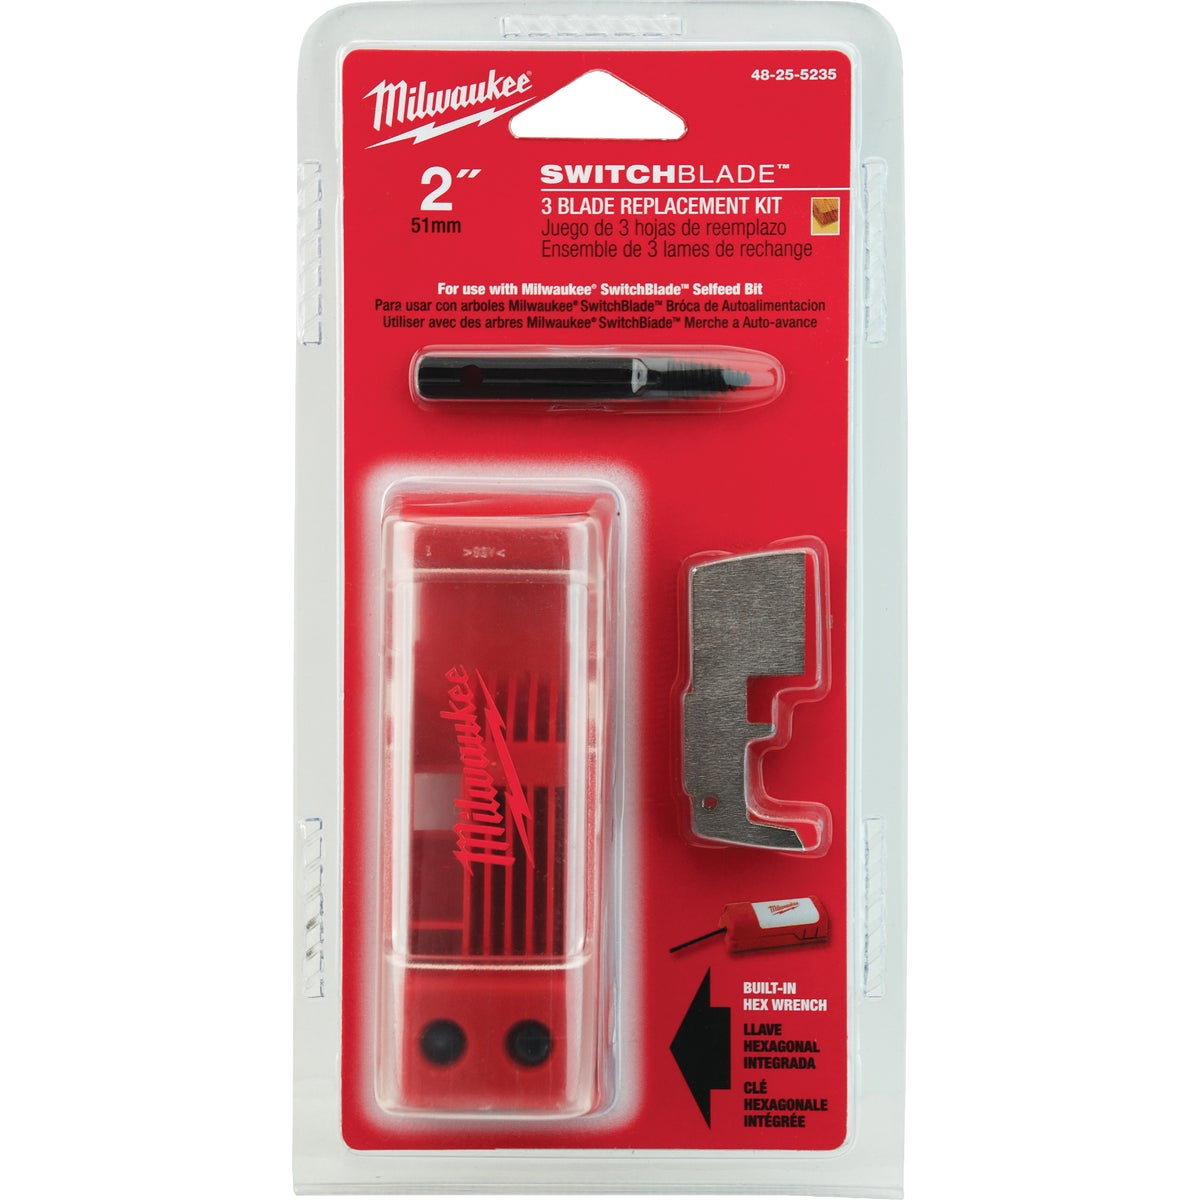 "3PK 2"" SWITCHBLADES - 48-25-5225 by Milwaukee Accessory"